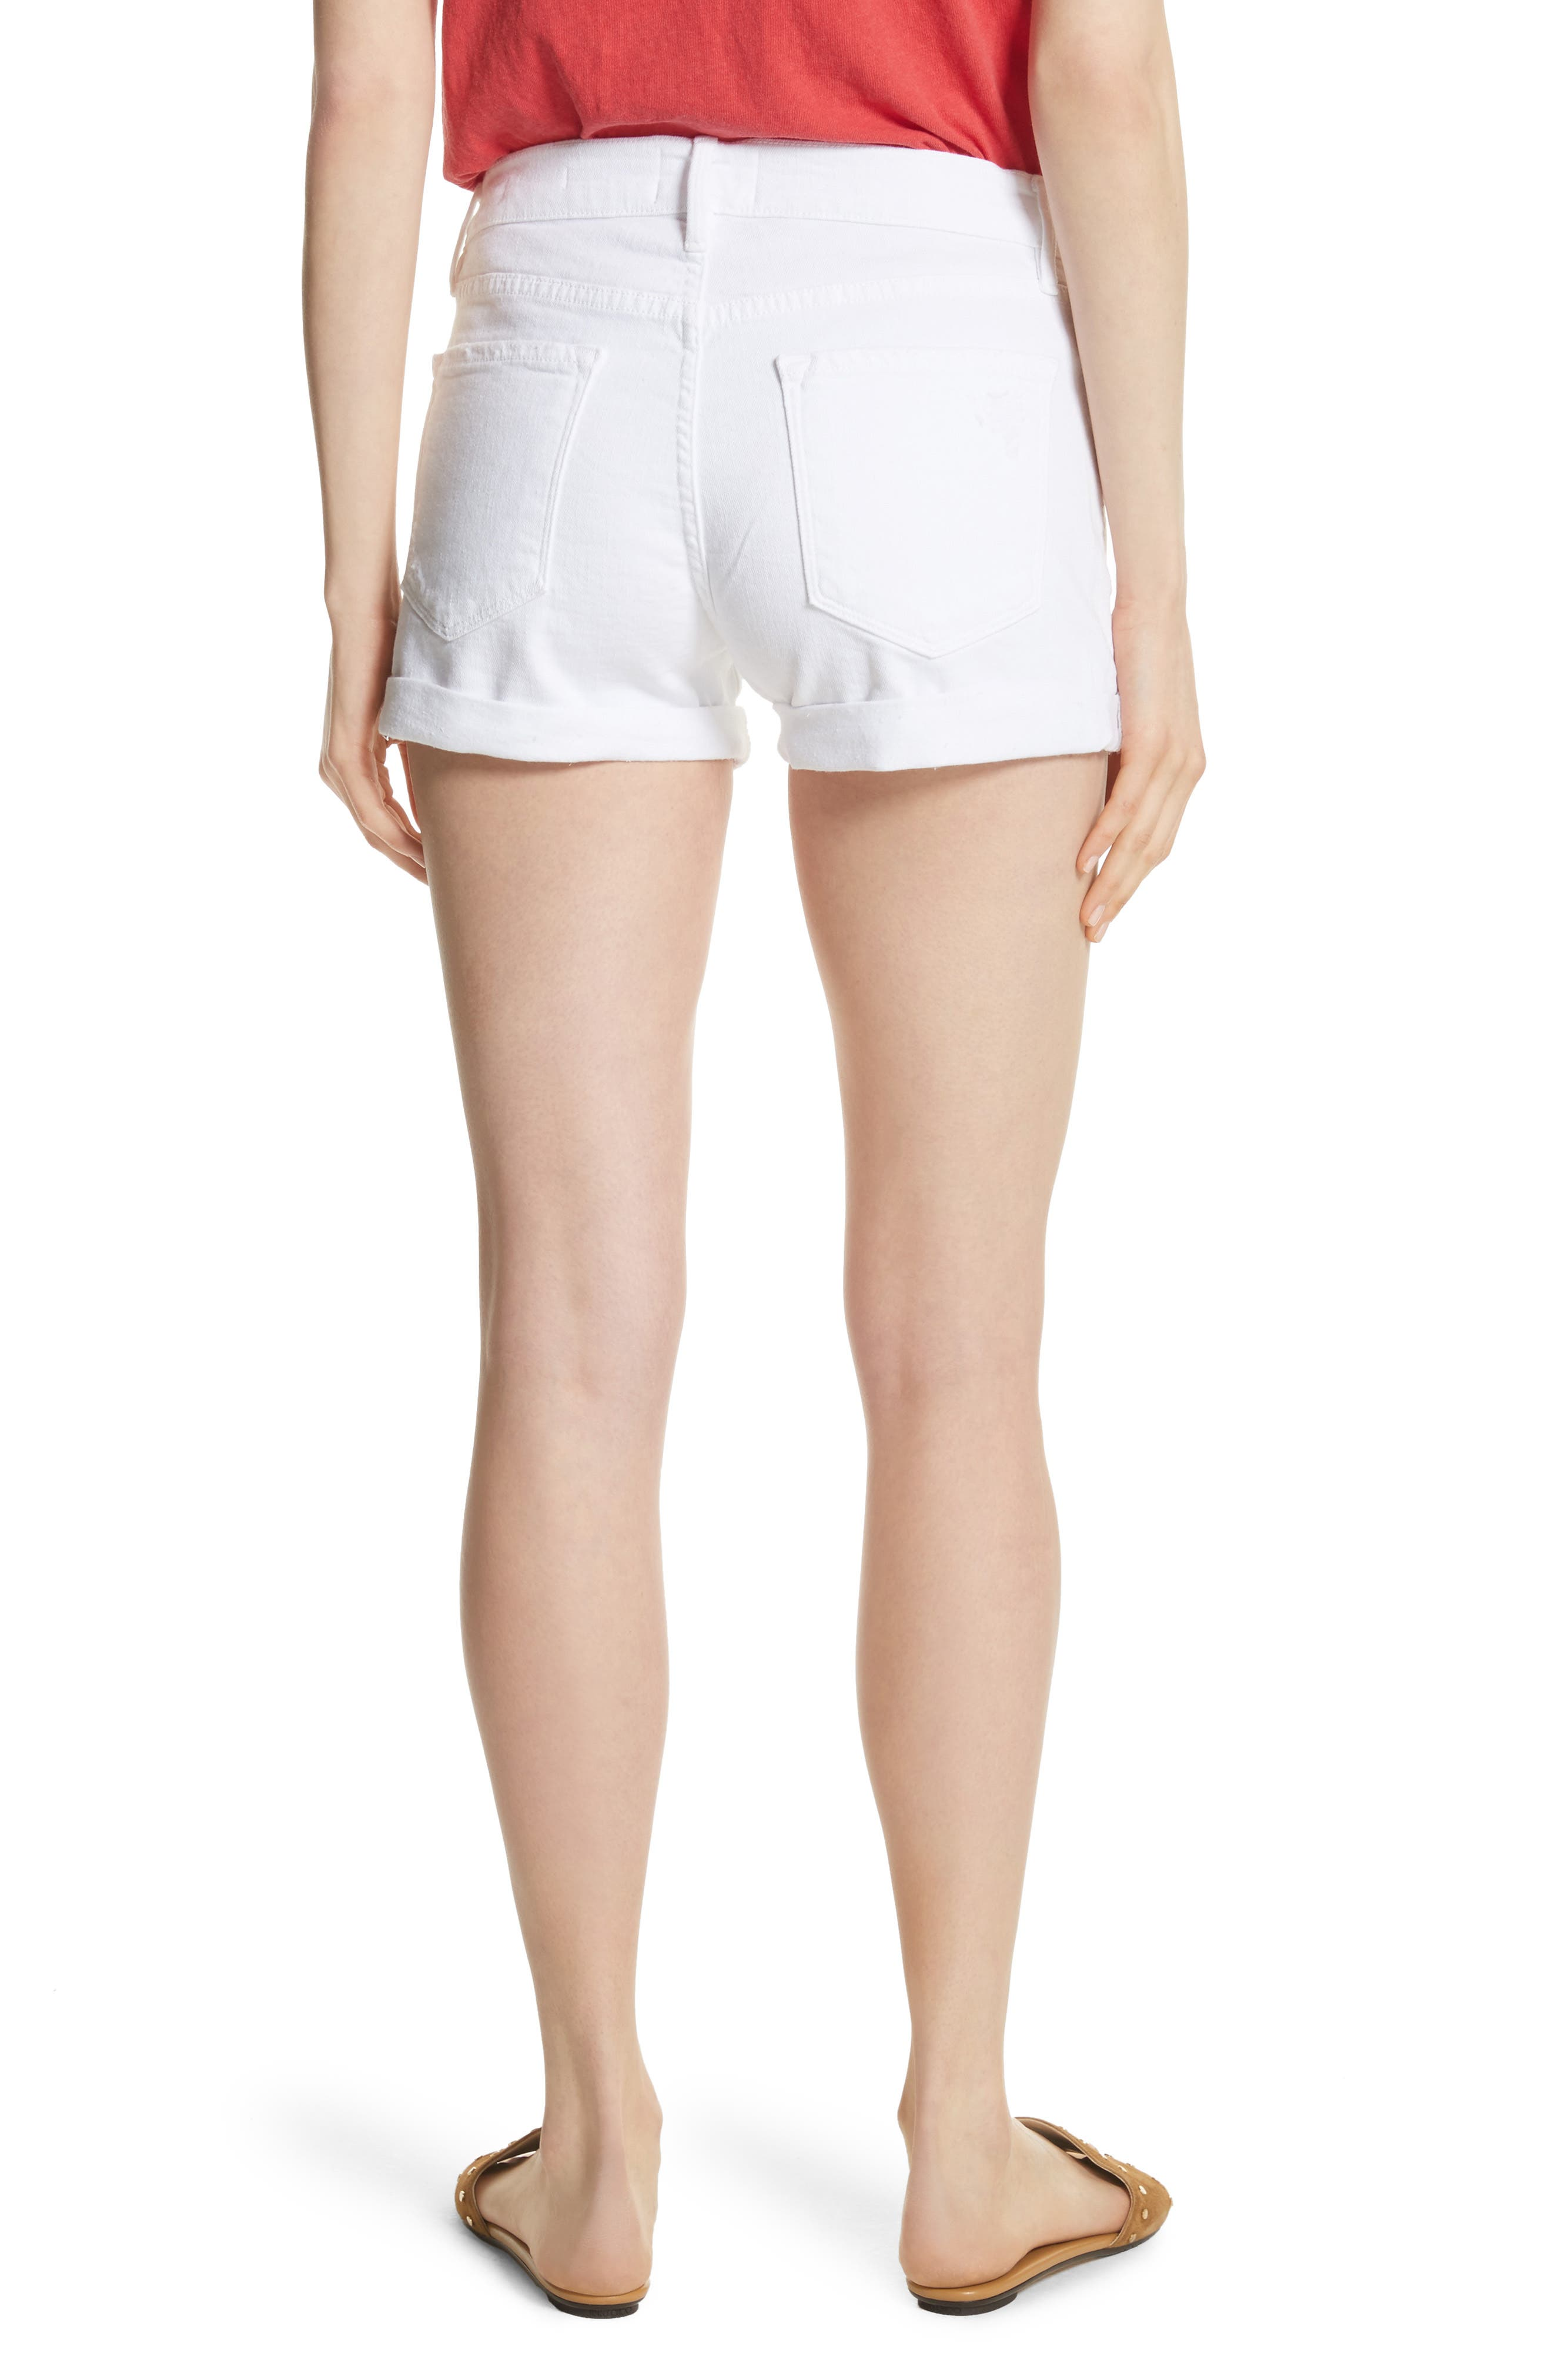 Le Cutoff Cuffed Jean Shorts,                             Alternate thumbnail 2, color,                             Blanc Rookley